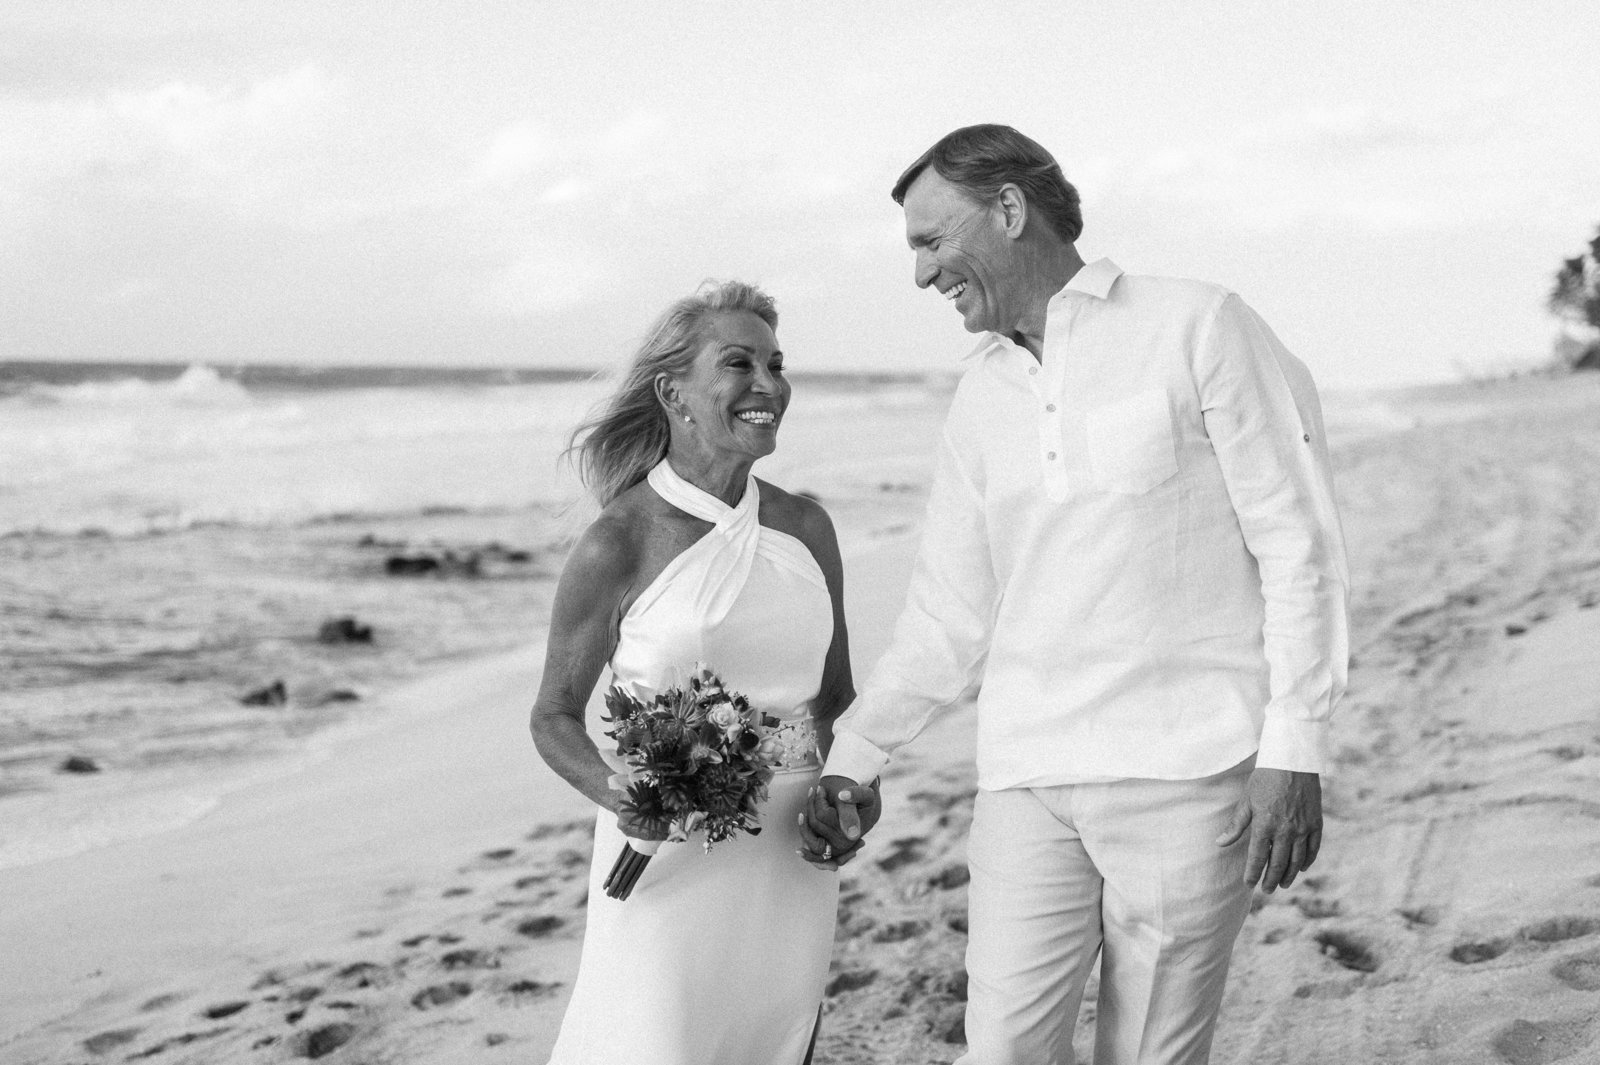 Candy-and-Dave-Hawaii-Wedding-Melissa-Desjardins-Photography-4